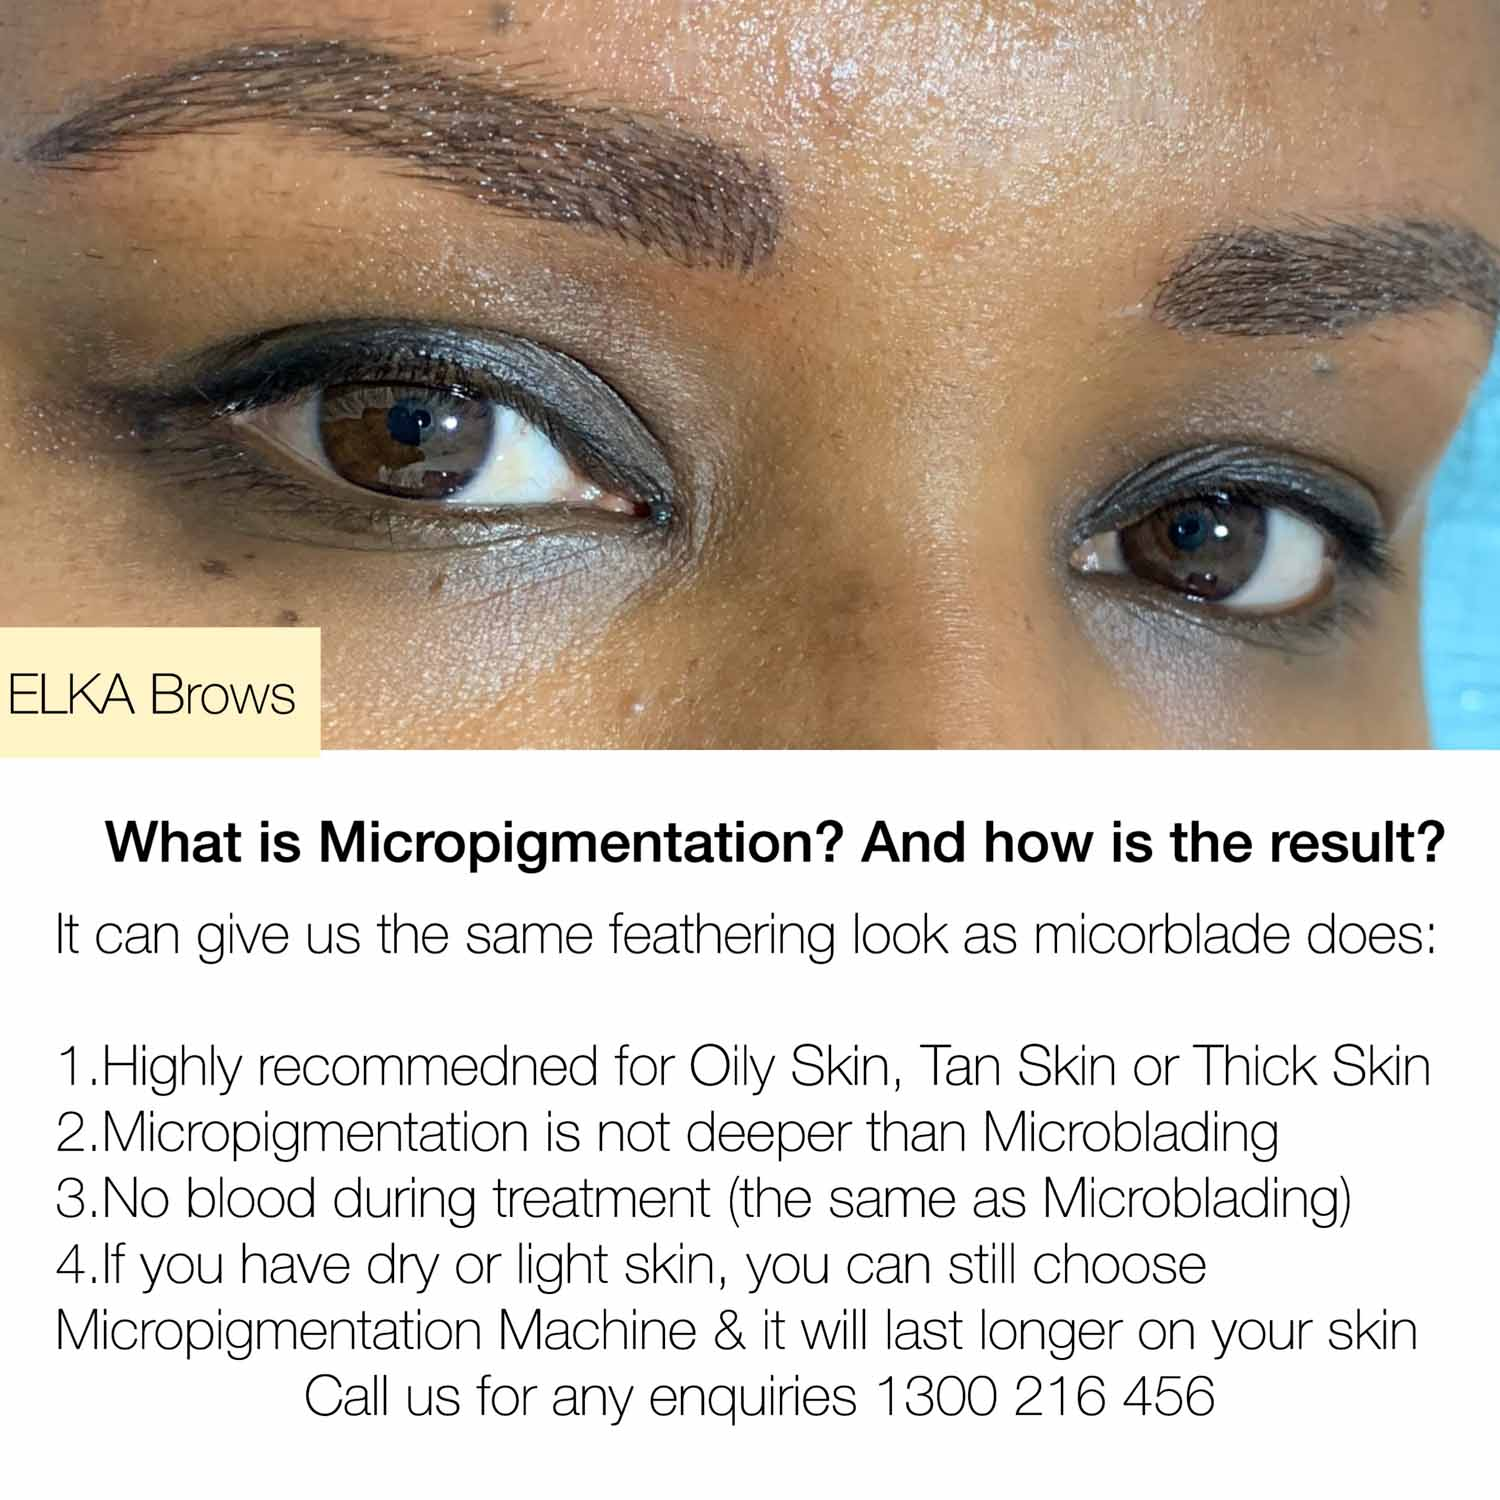 eyebrow micropigmentation